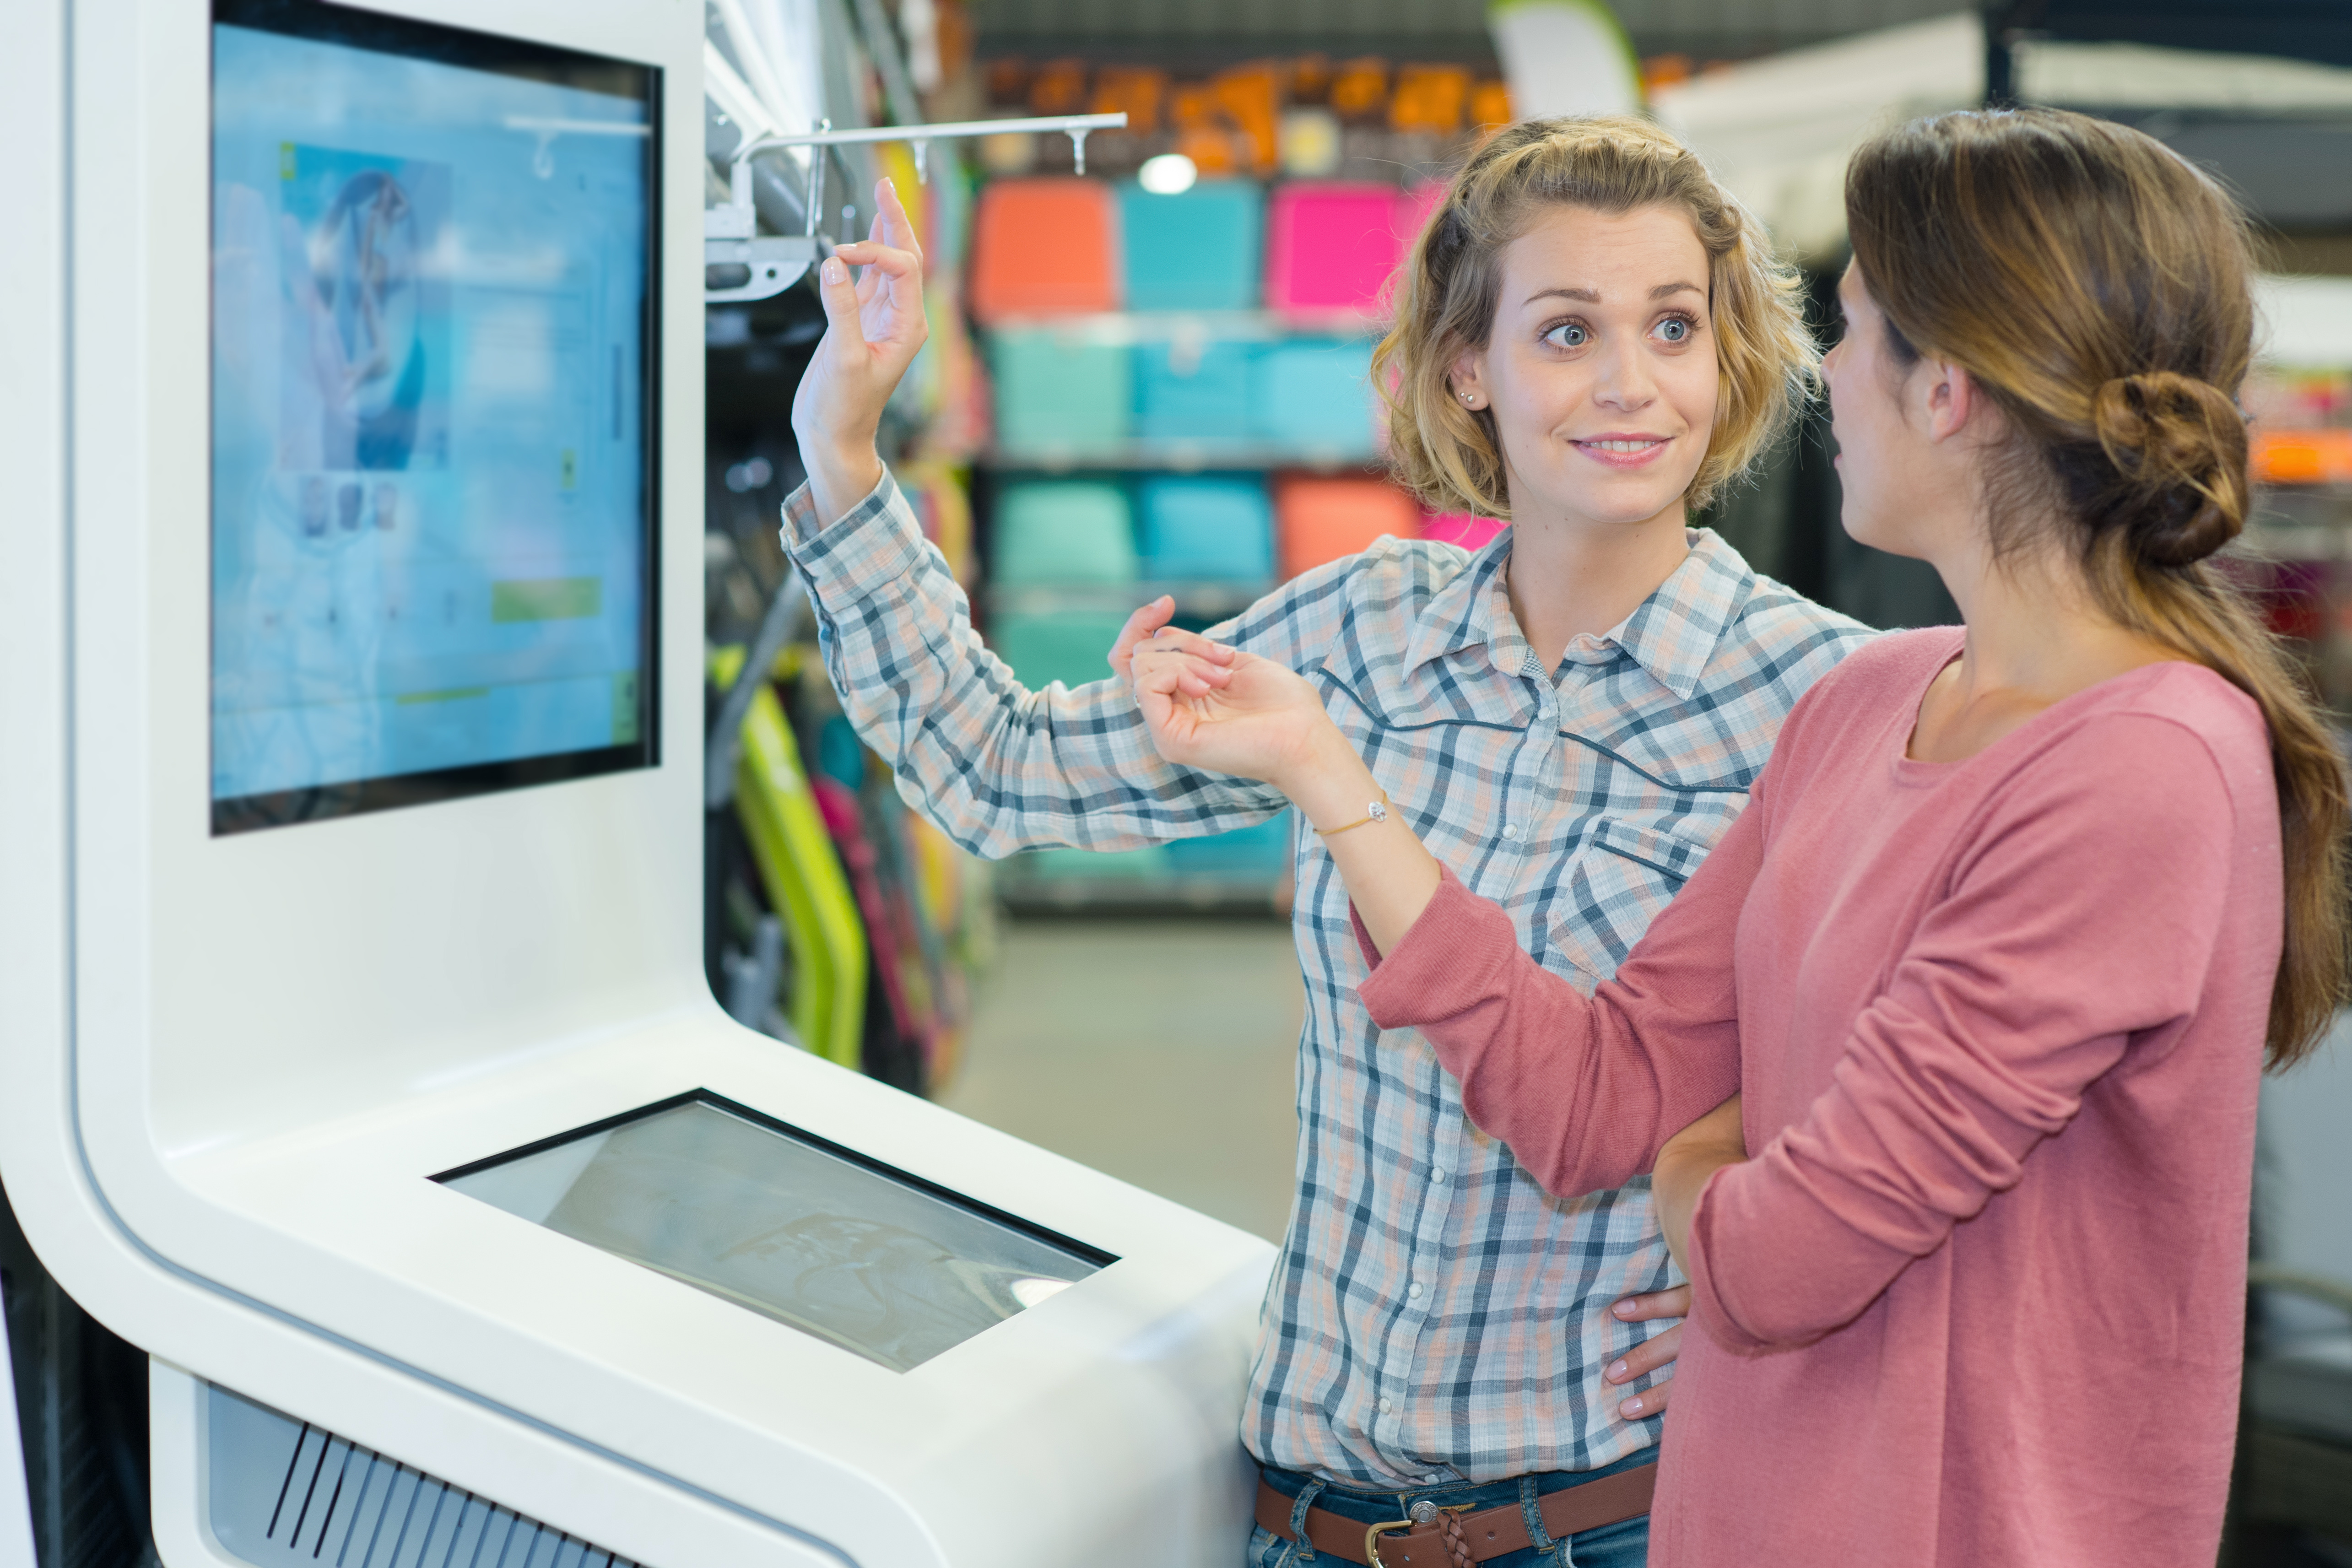 Smart shop displays - How data could help retail tackle challenges